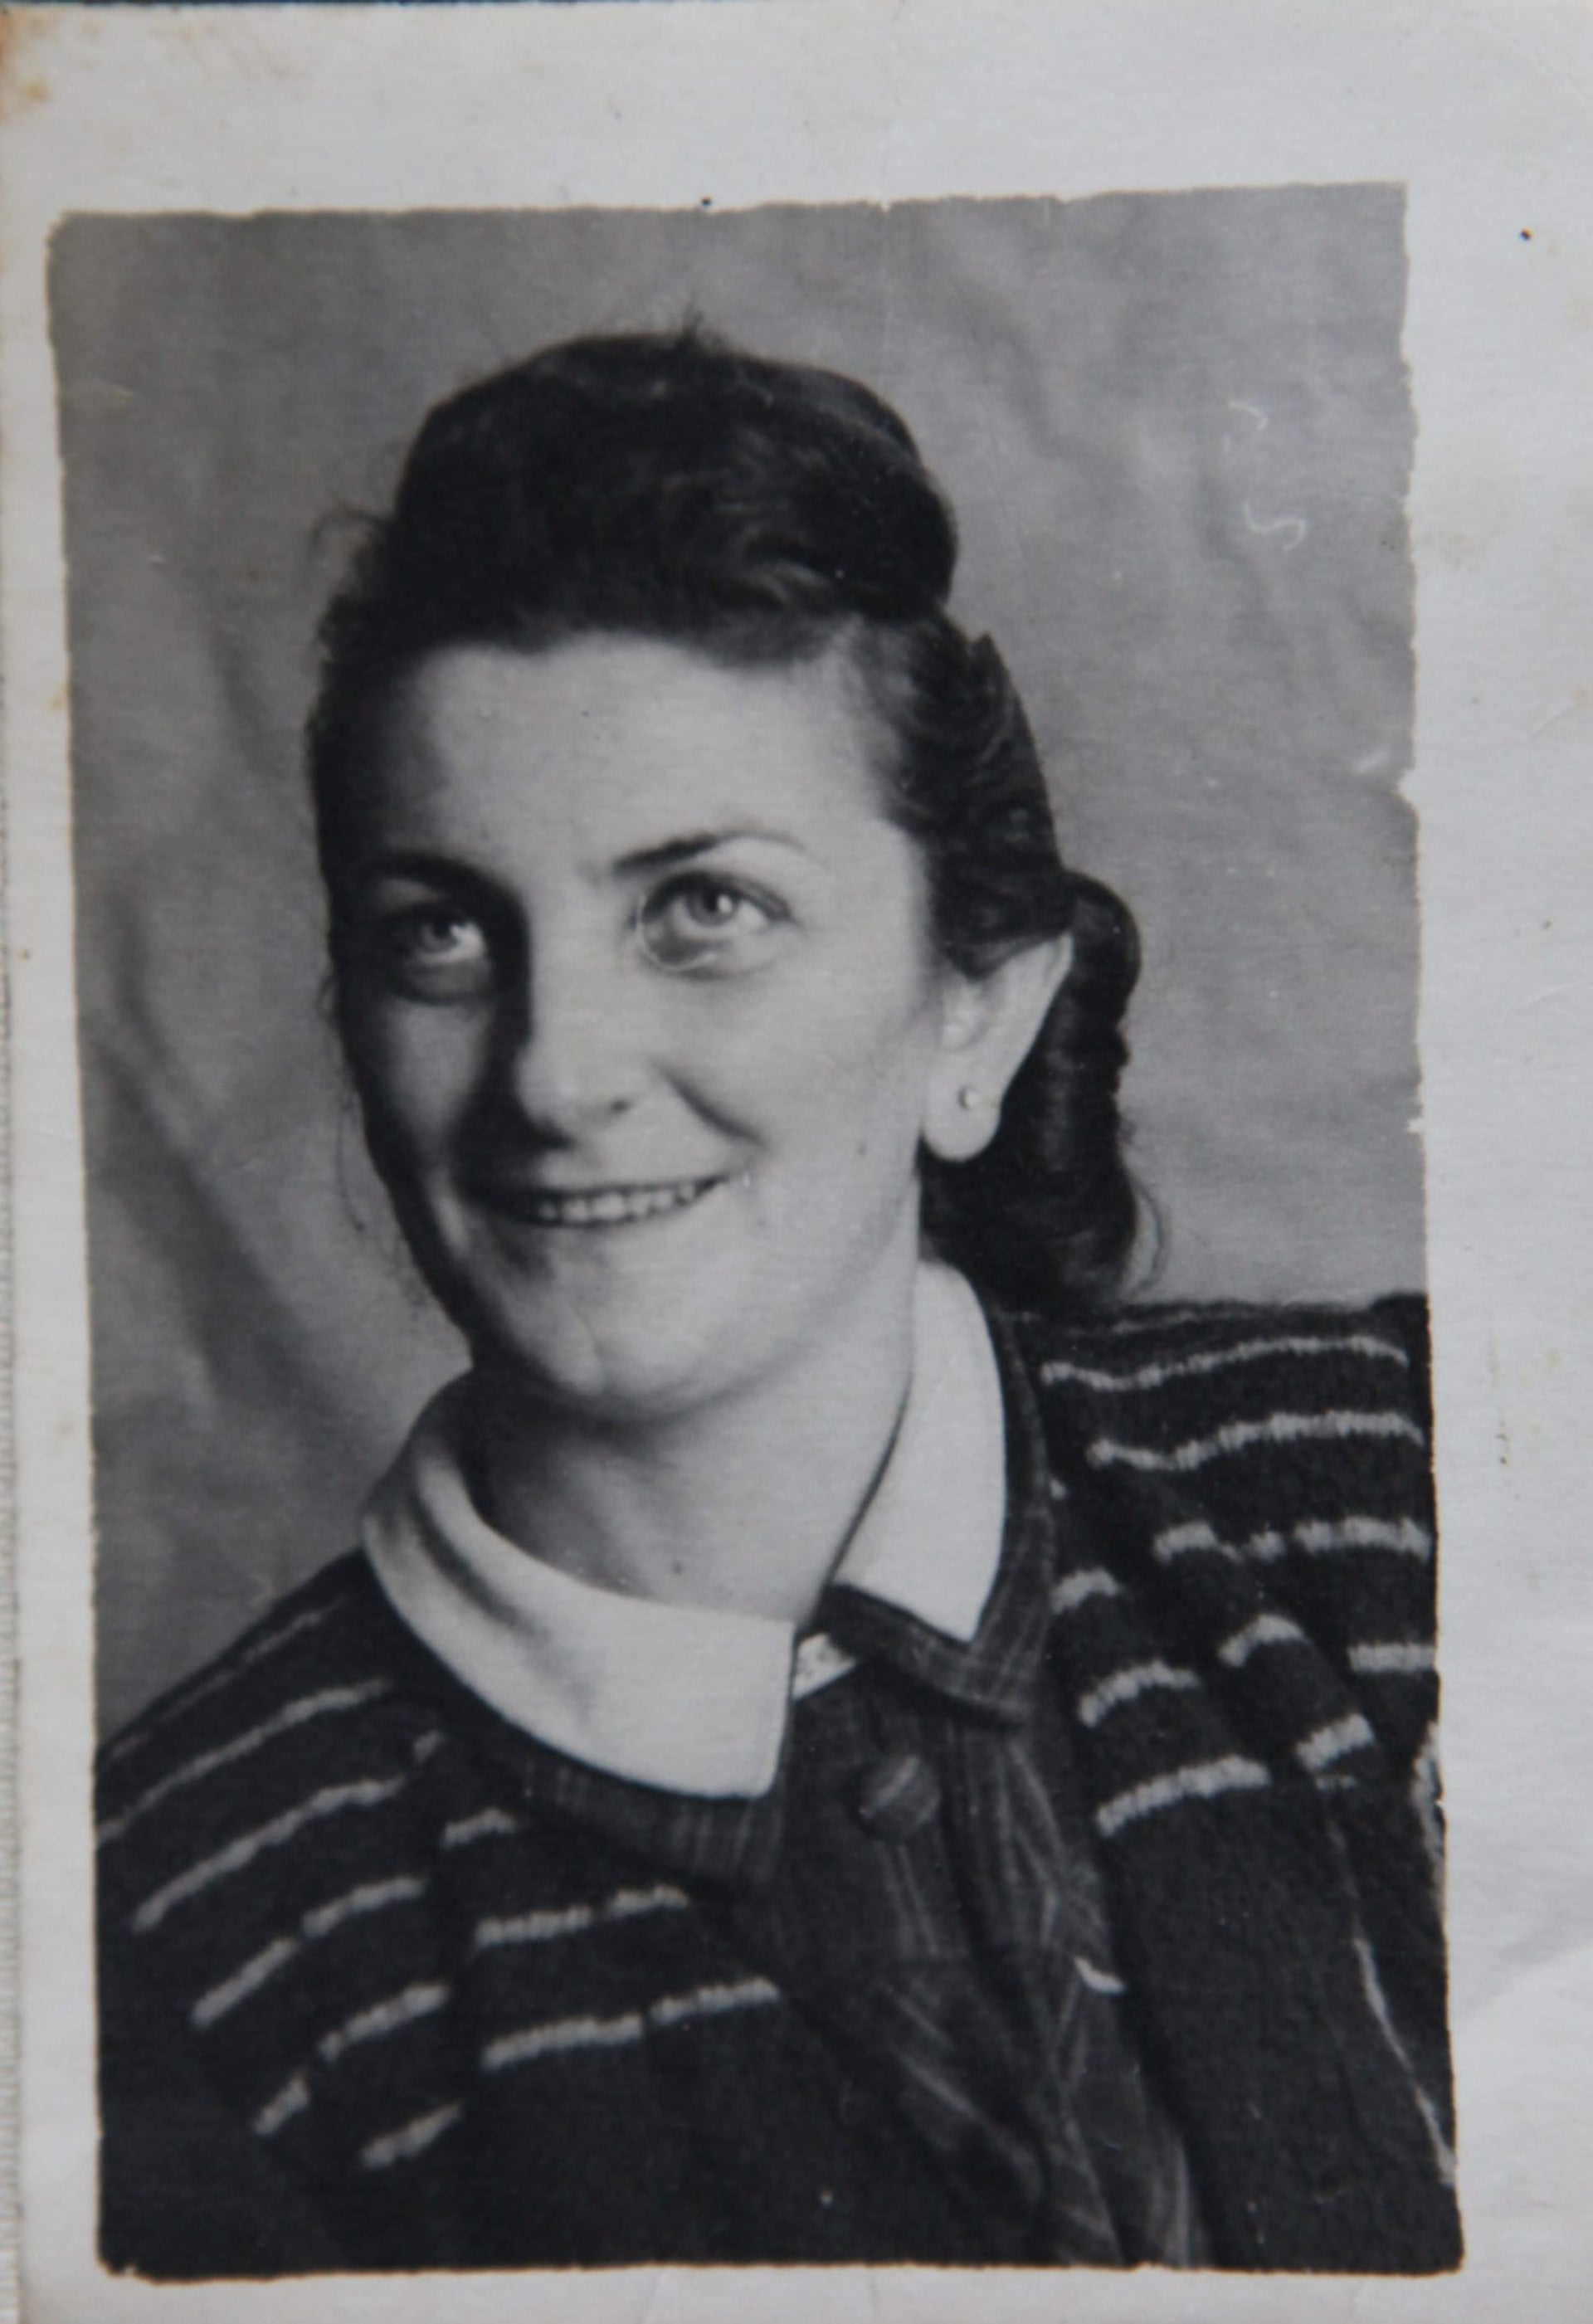 A photograph of Yuval Yareach's grandmother, Manja Wolfgang.